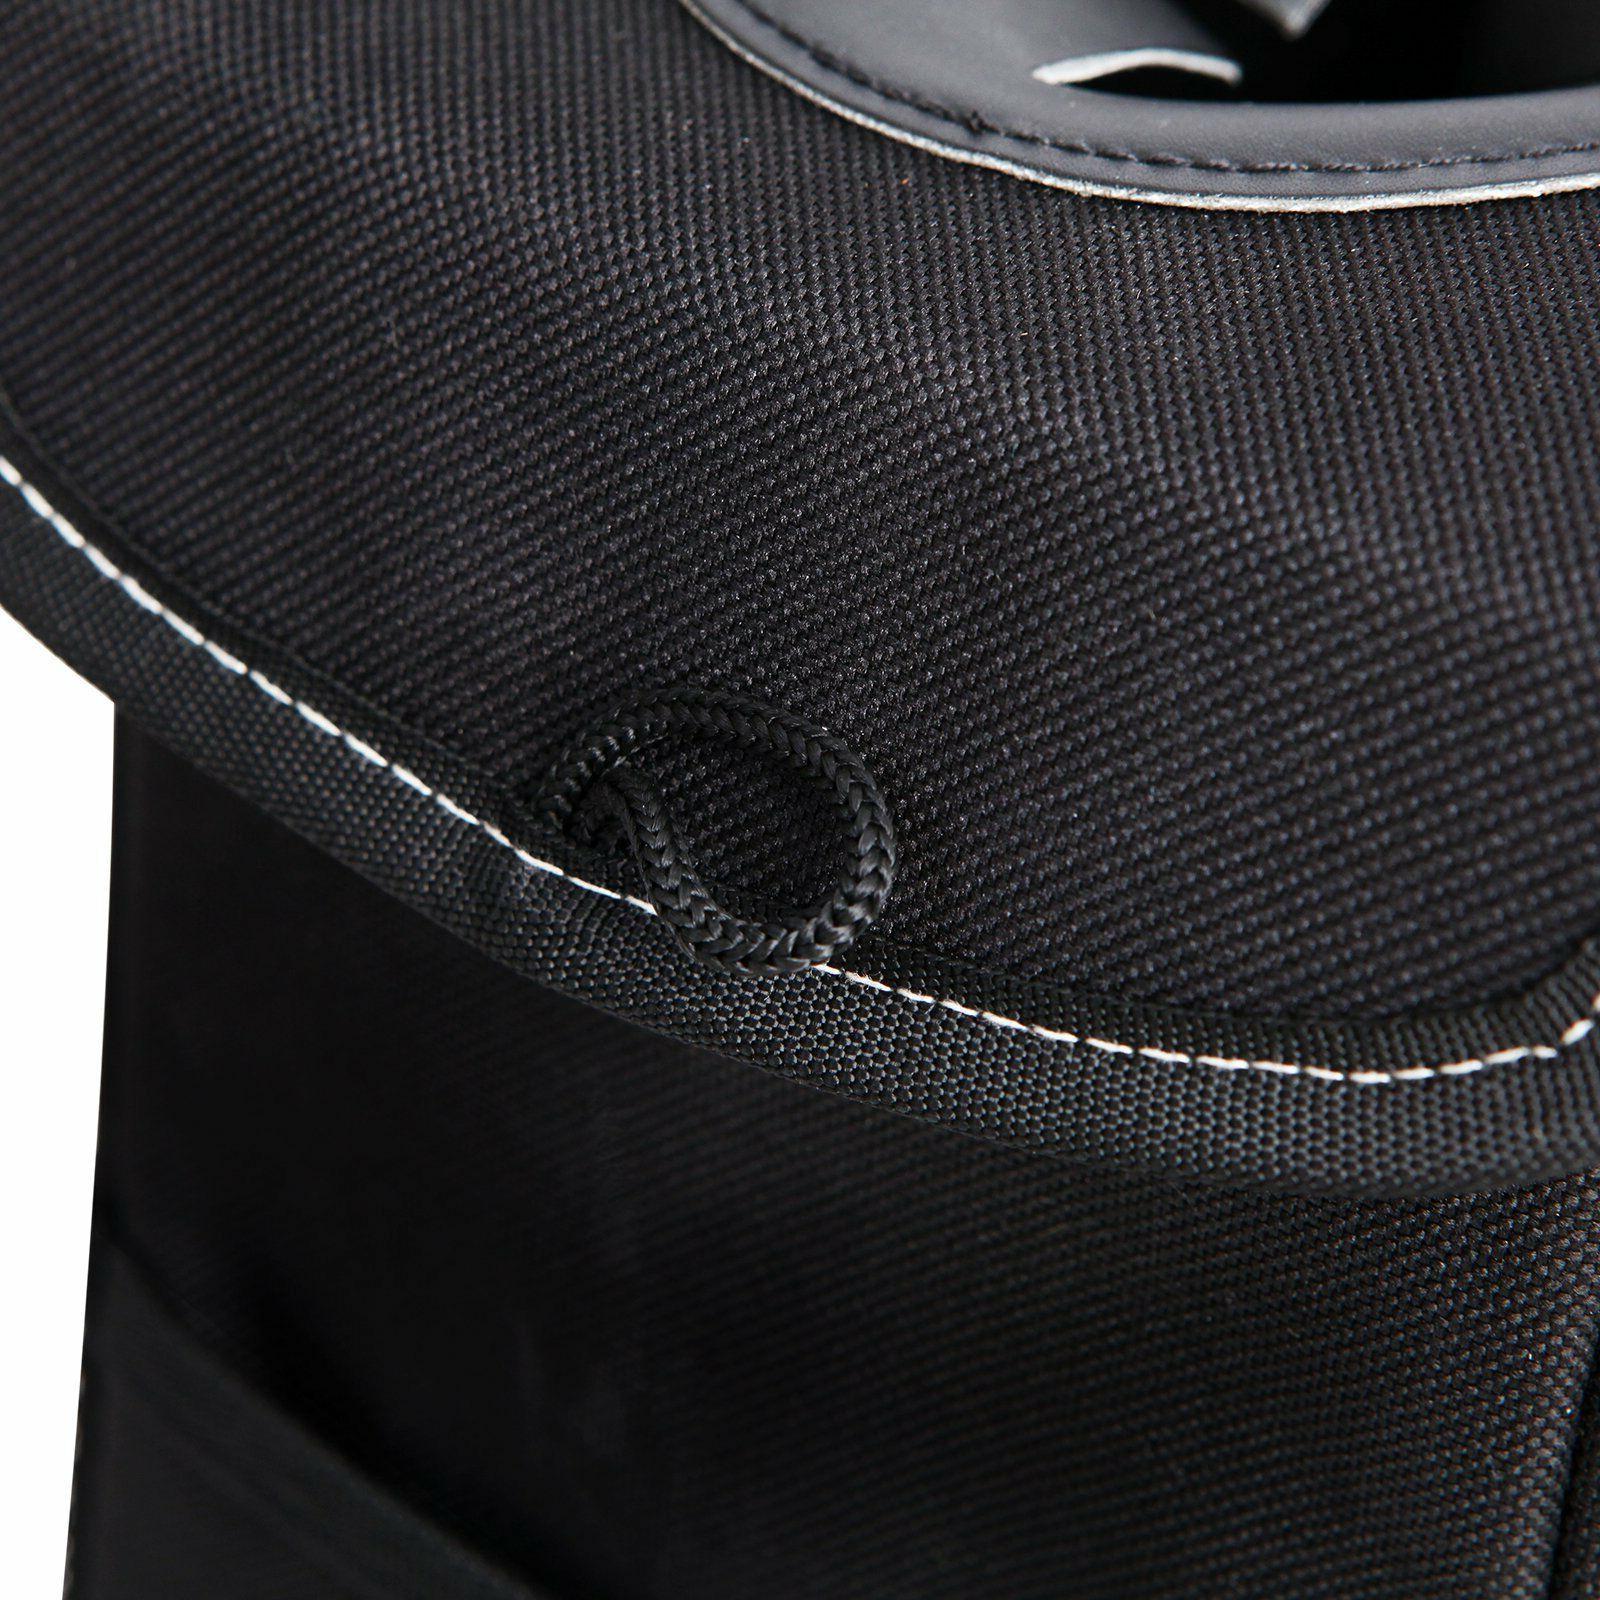 Can With Lid Pockets Vehicle Pouch